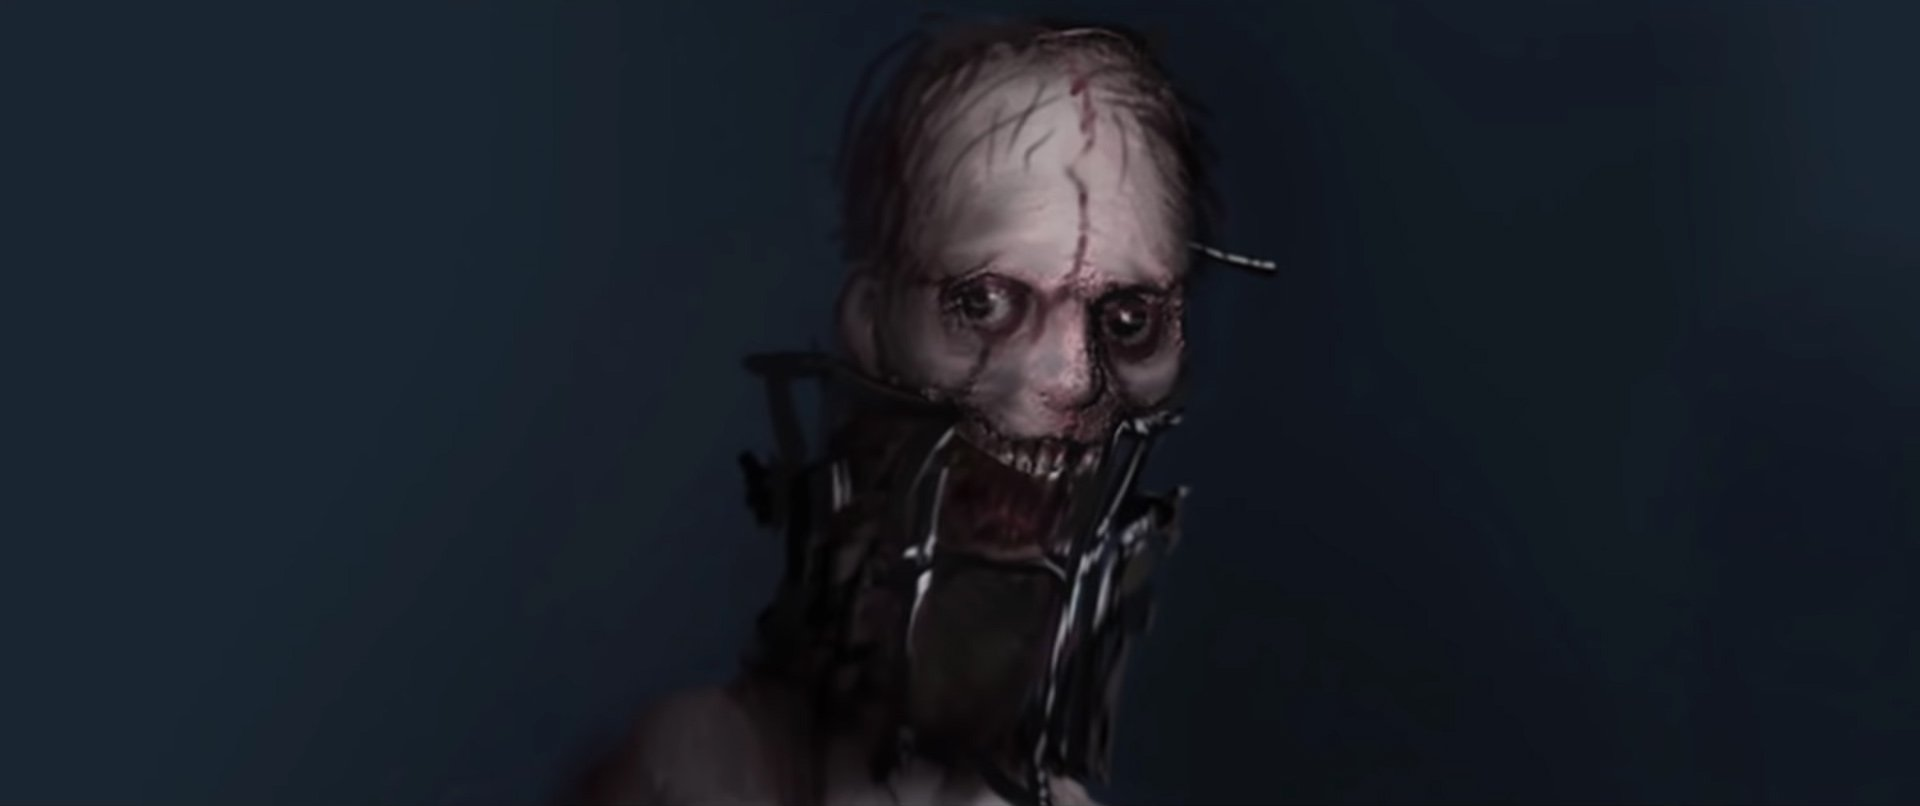 Resident Evil 2 cut content - Condemned face up close